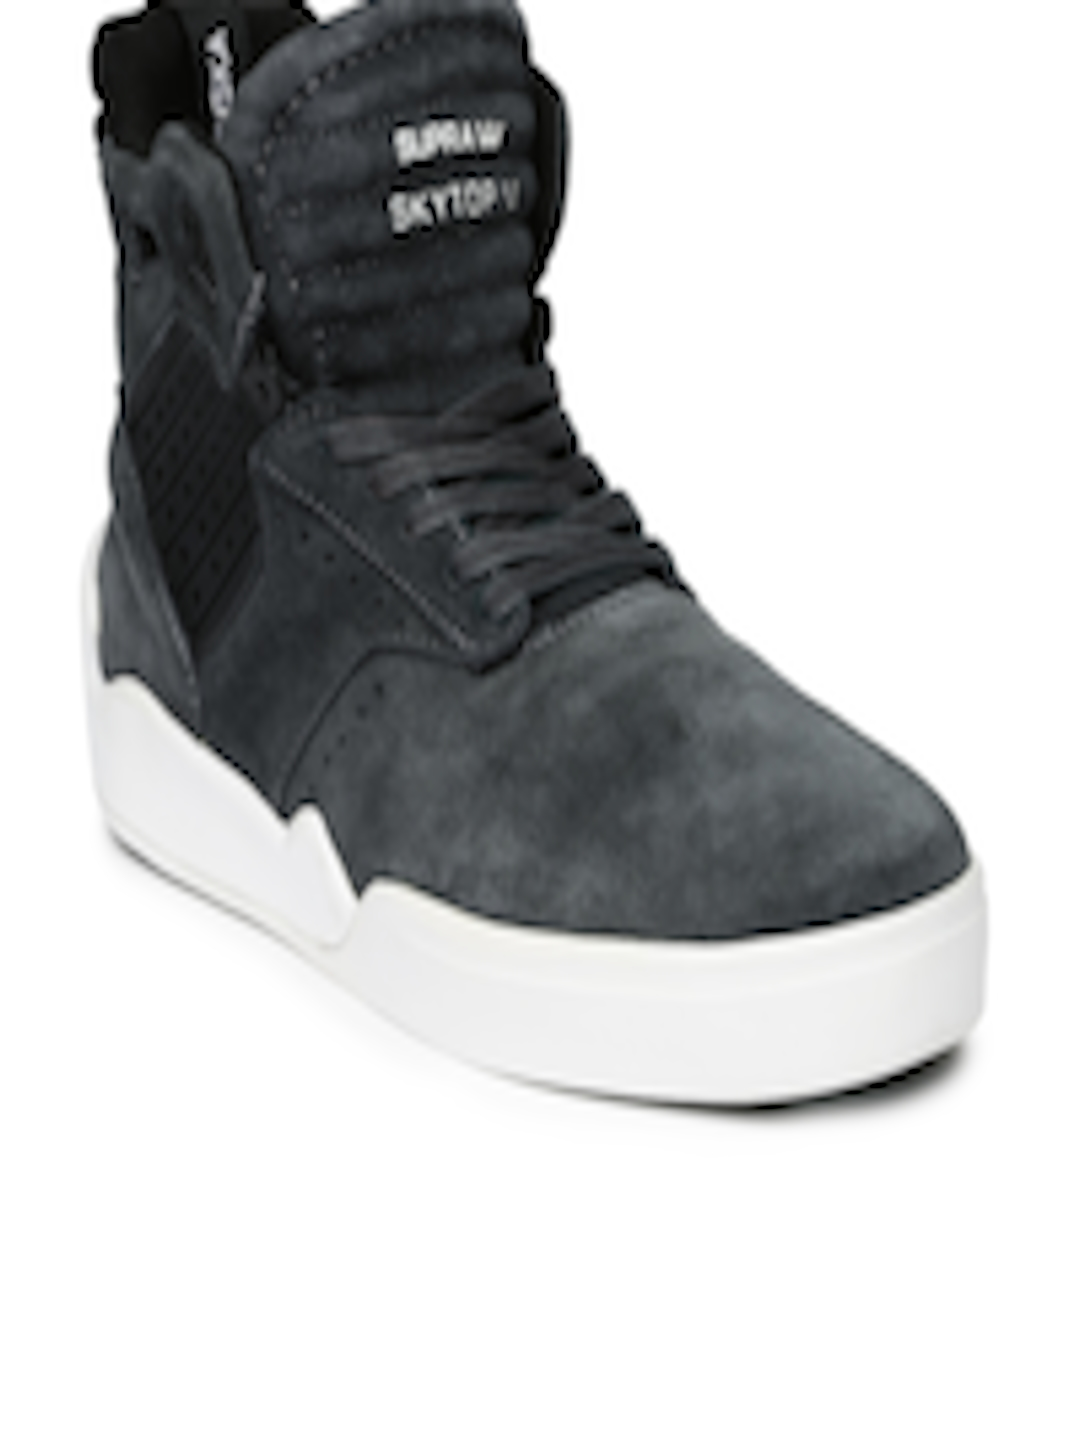 7a262b3b20ef Buy Supra Men Grey Skytop IV Leather Sneakers - Casual Shoes for Men  1206369